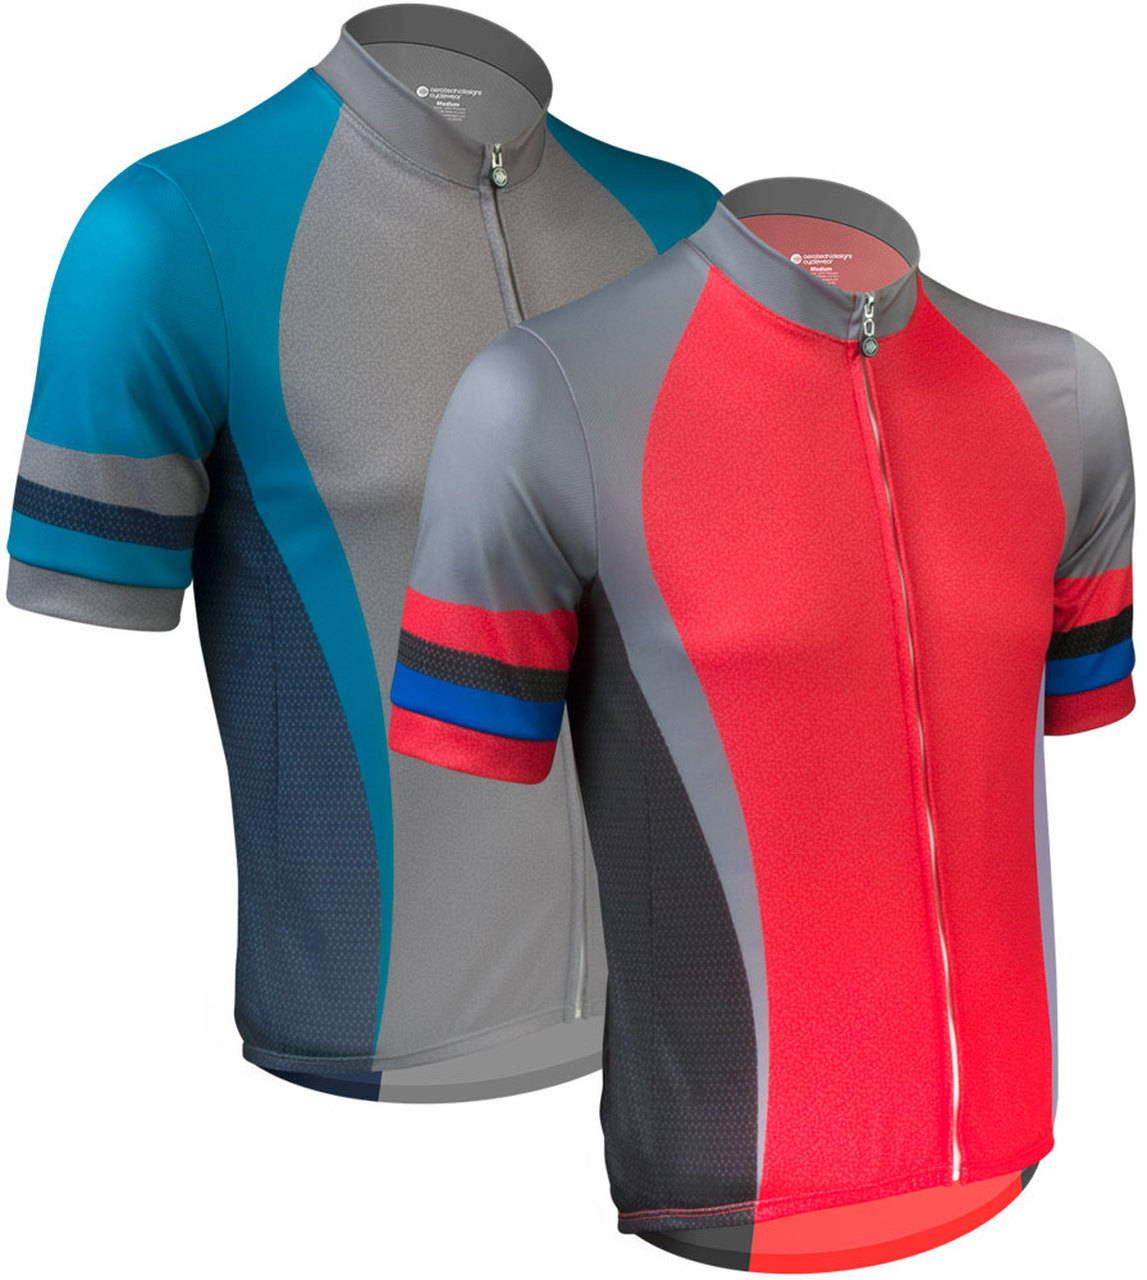 Team Leader Cycling Jersey